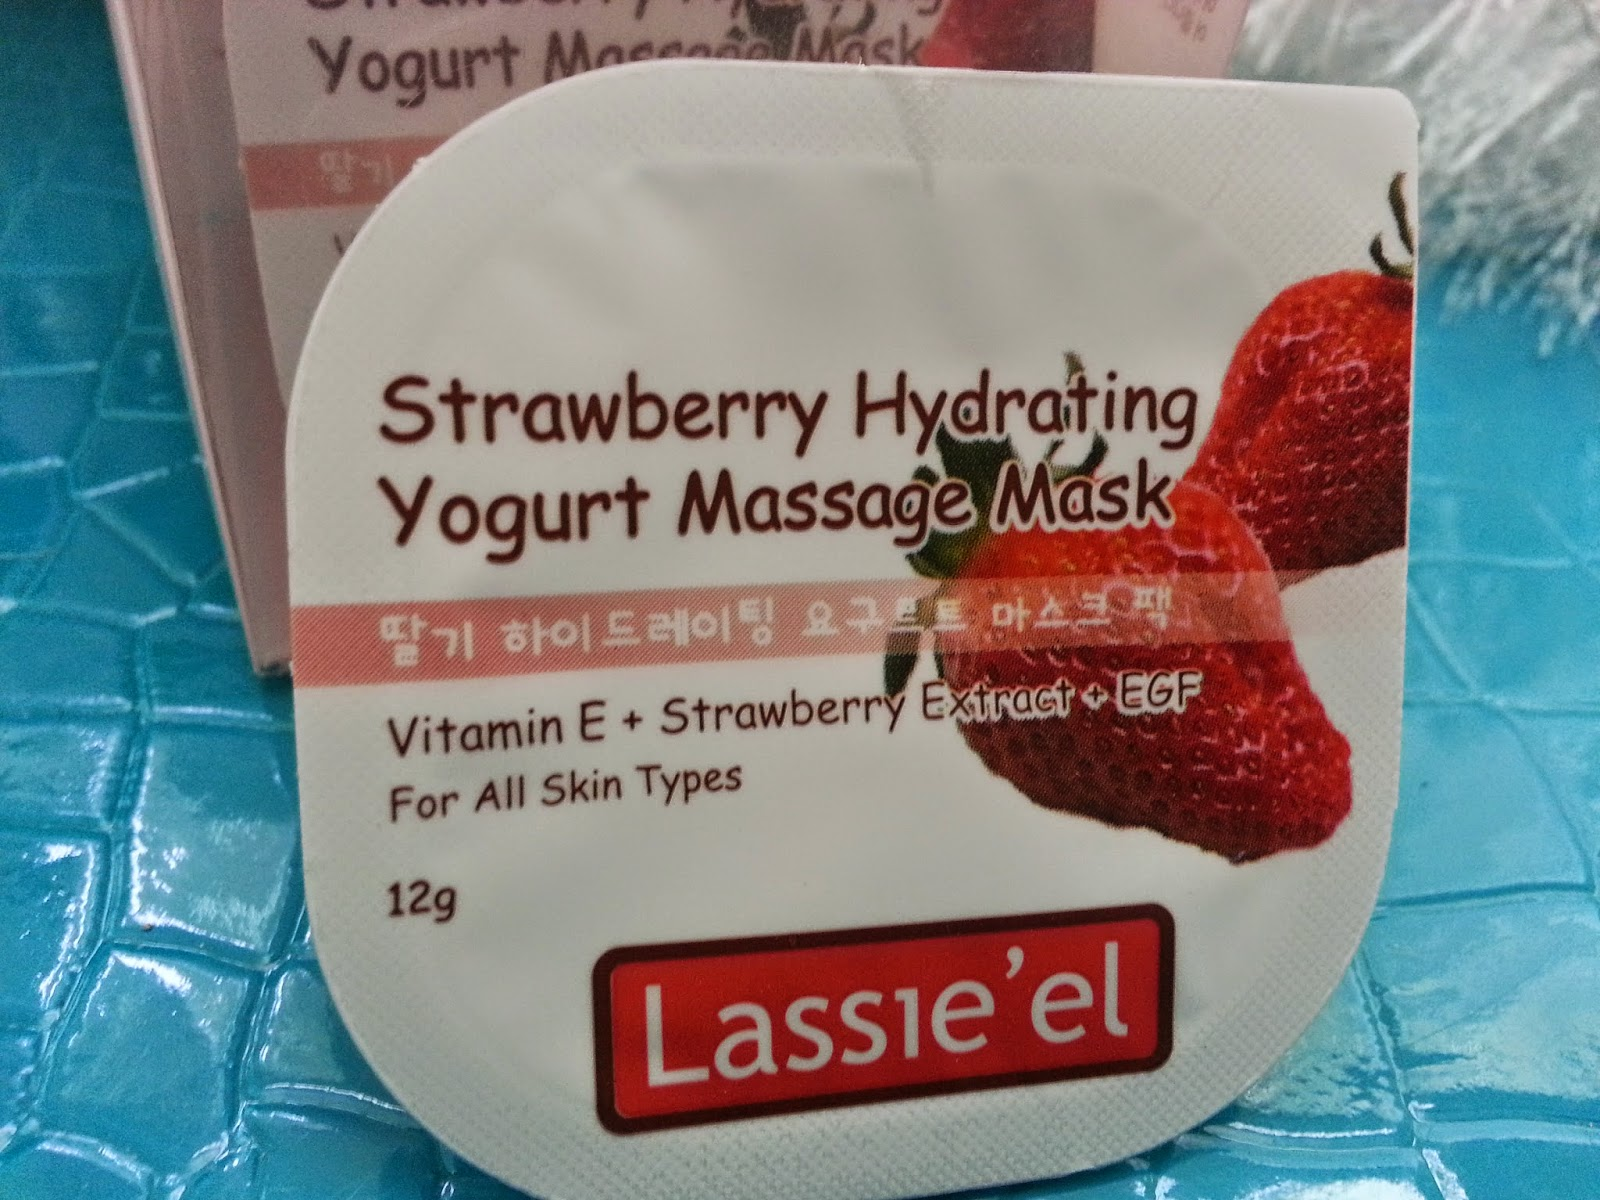 the packaging of the Lassie'el Strawberry Hydrating Yogurt Massage Mask